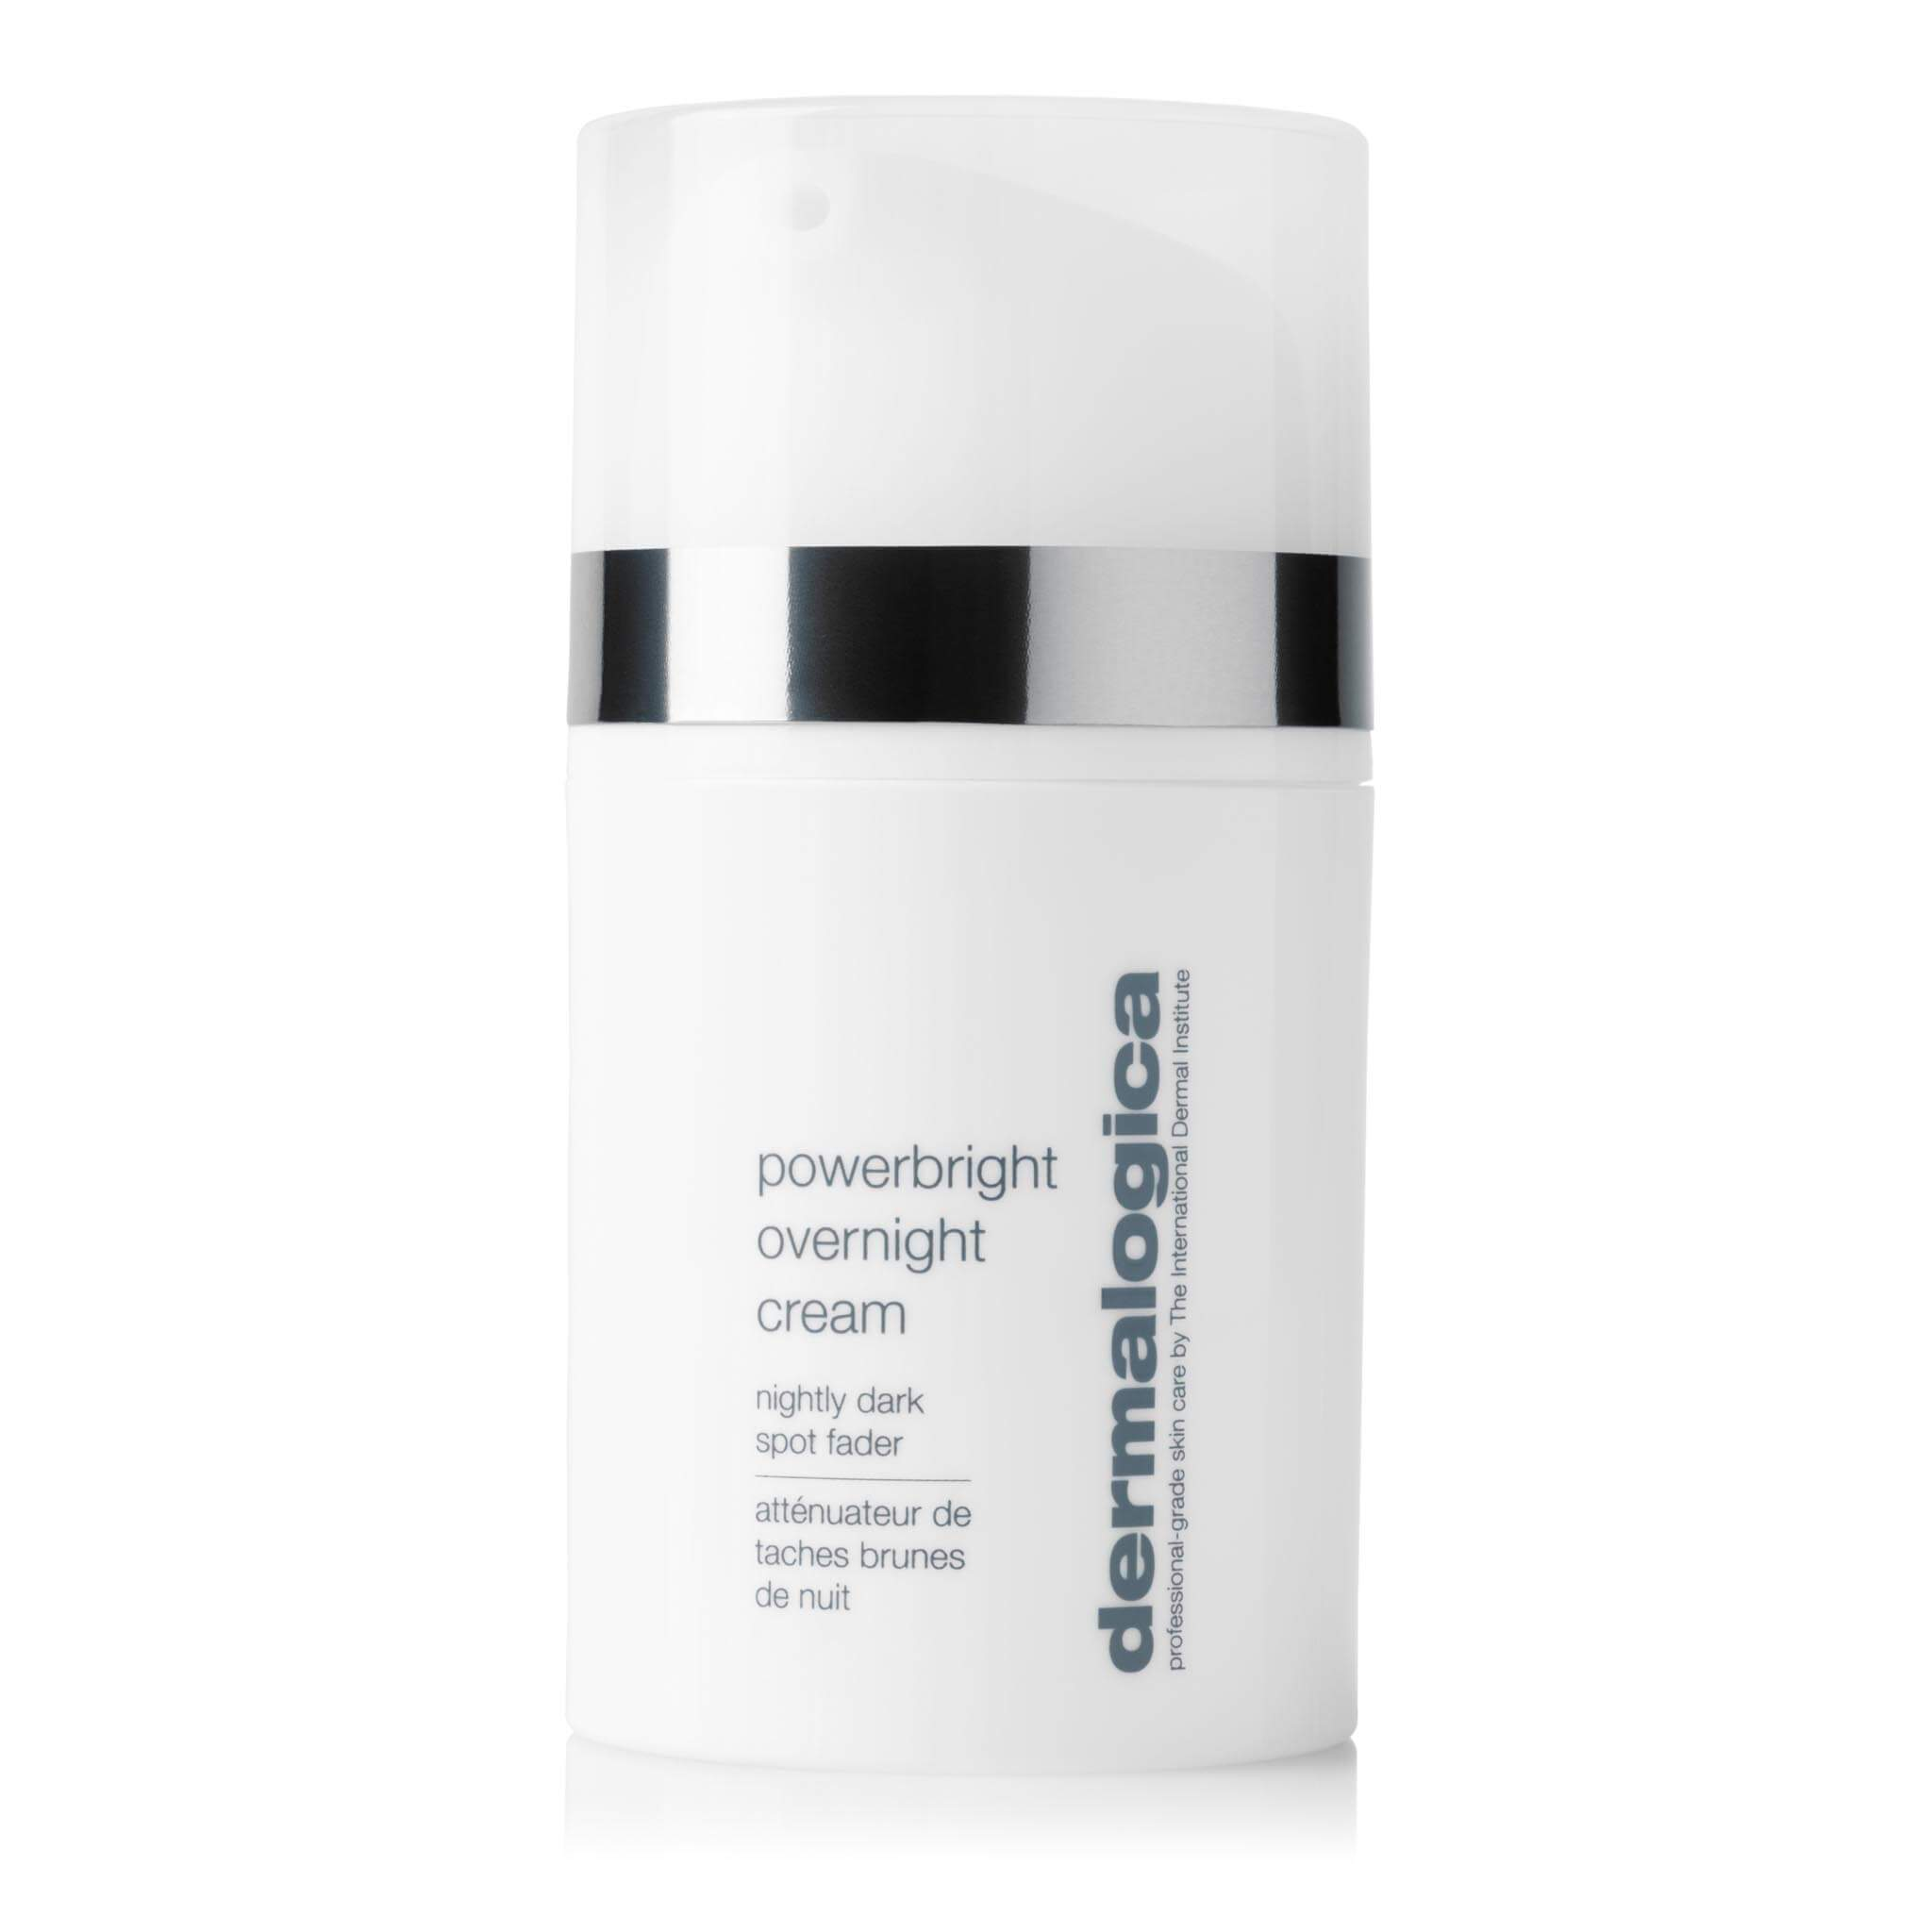 powerbright overnight cream